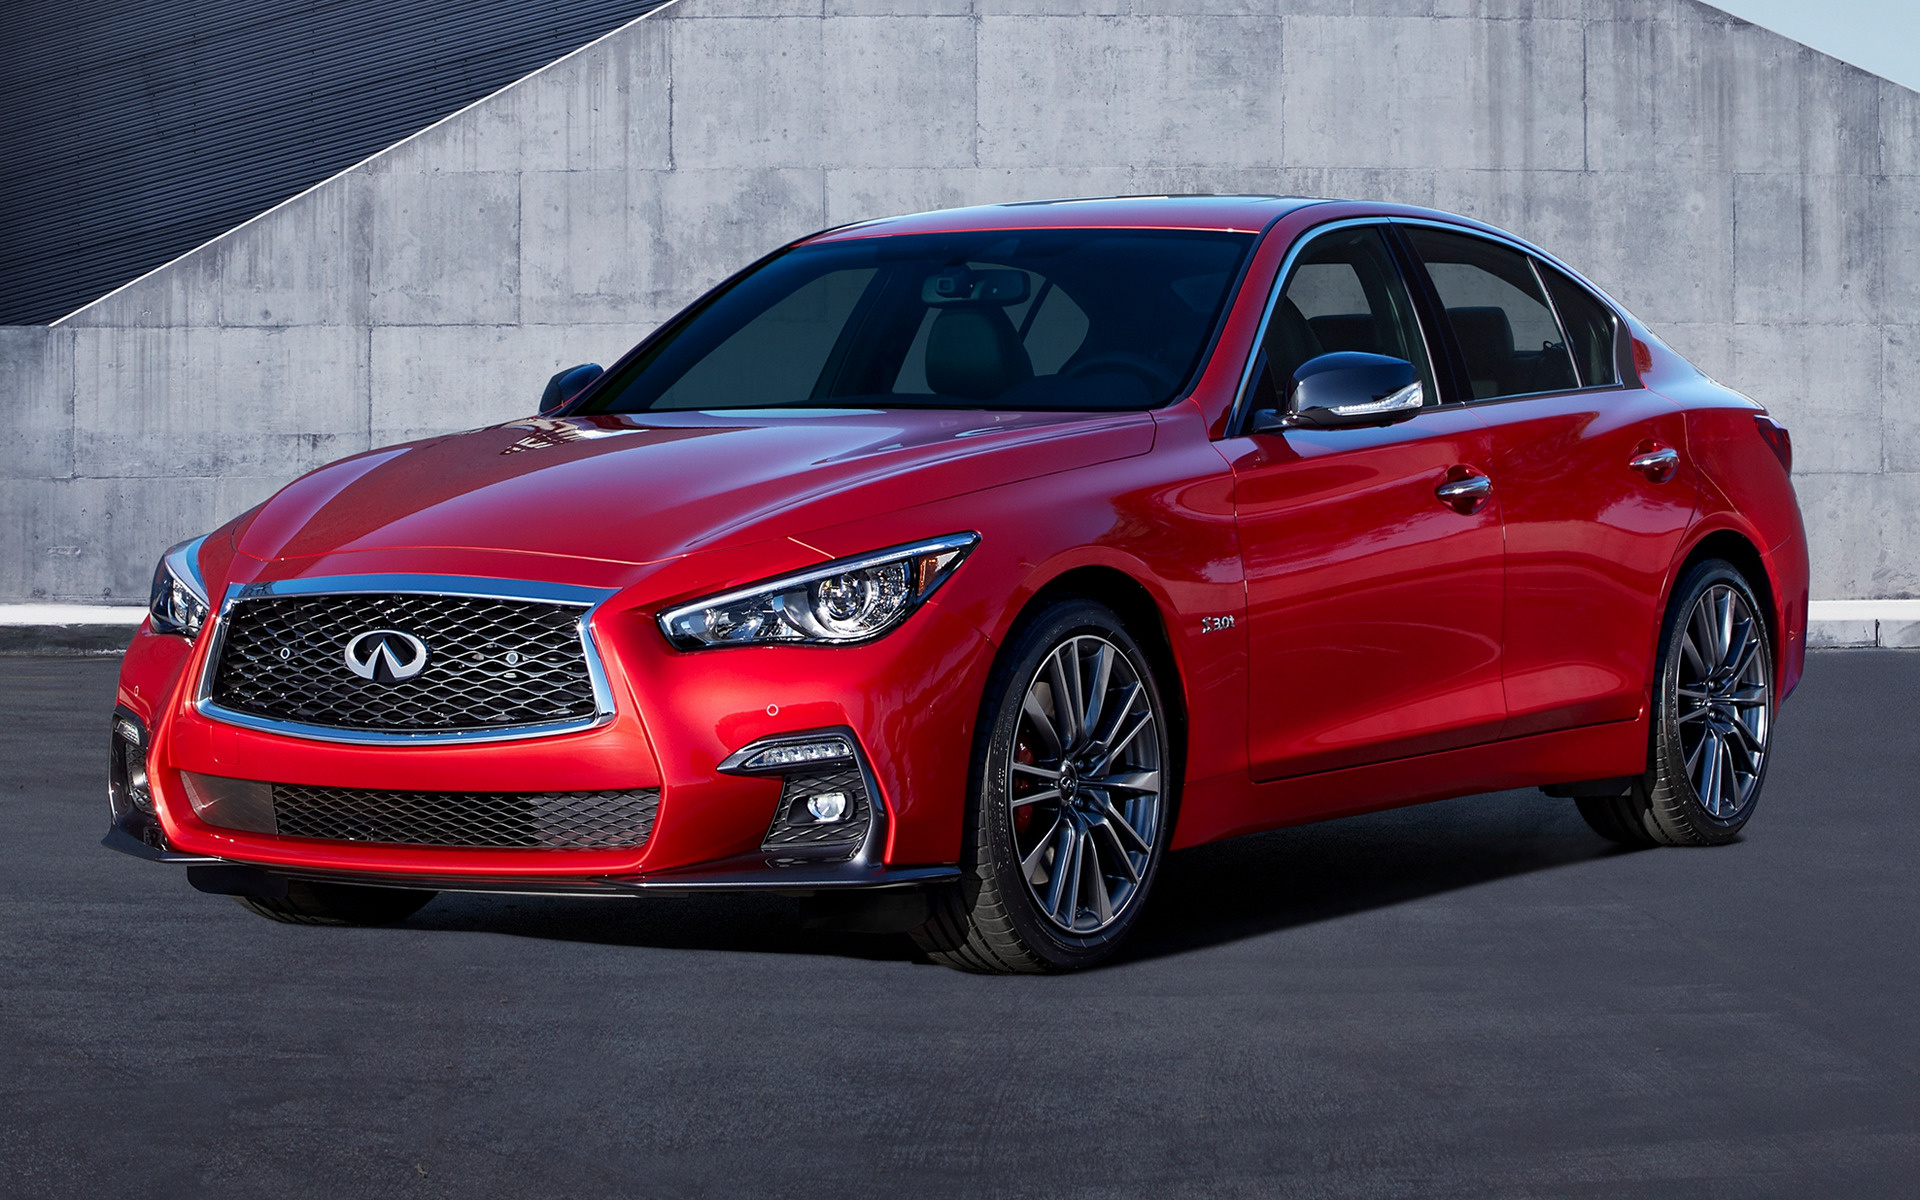 2018 Infiniti Q50 Sport - Wallpapers and HD Images | Car Pixel